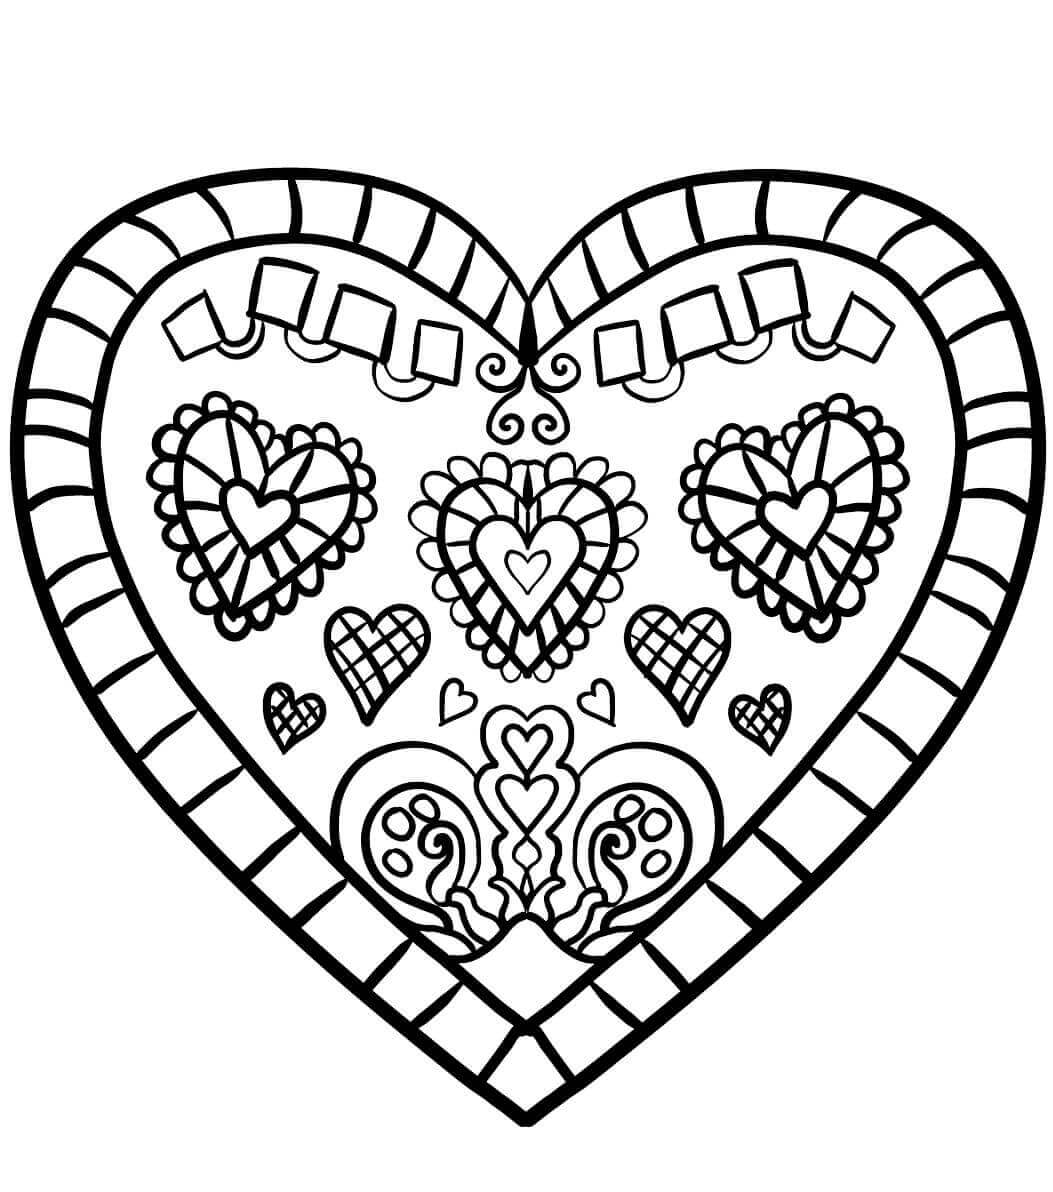 heart color sheets free printable heart coloring pages for kids color heart sheets